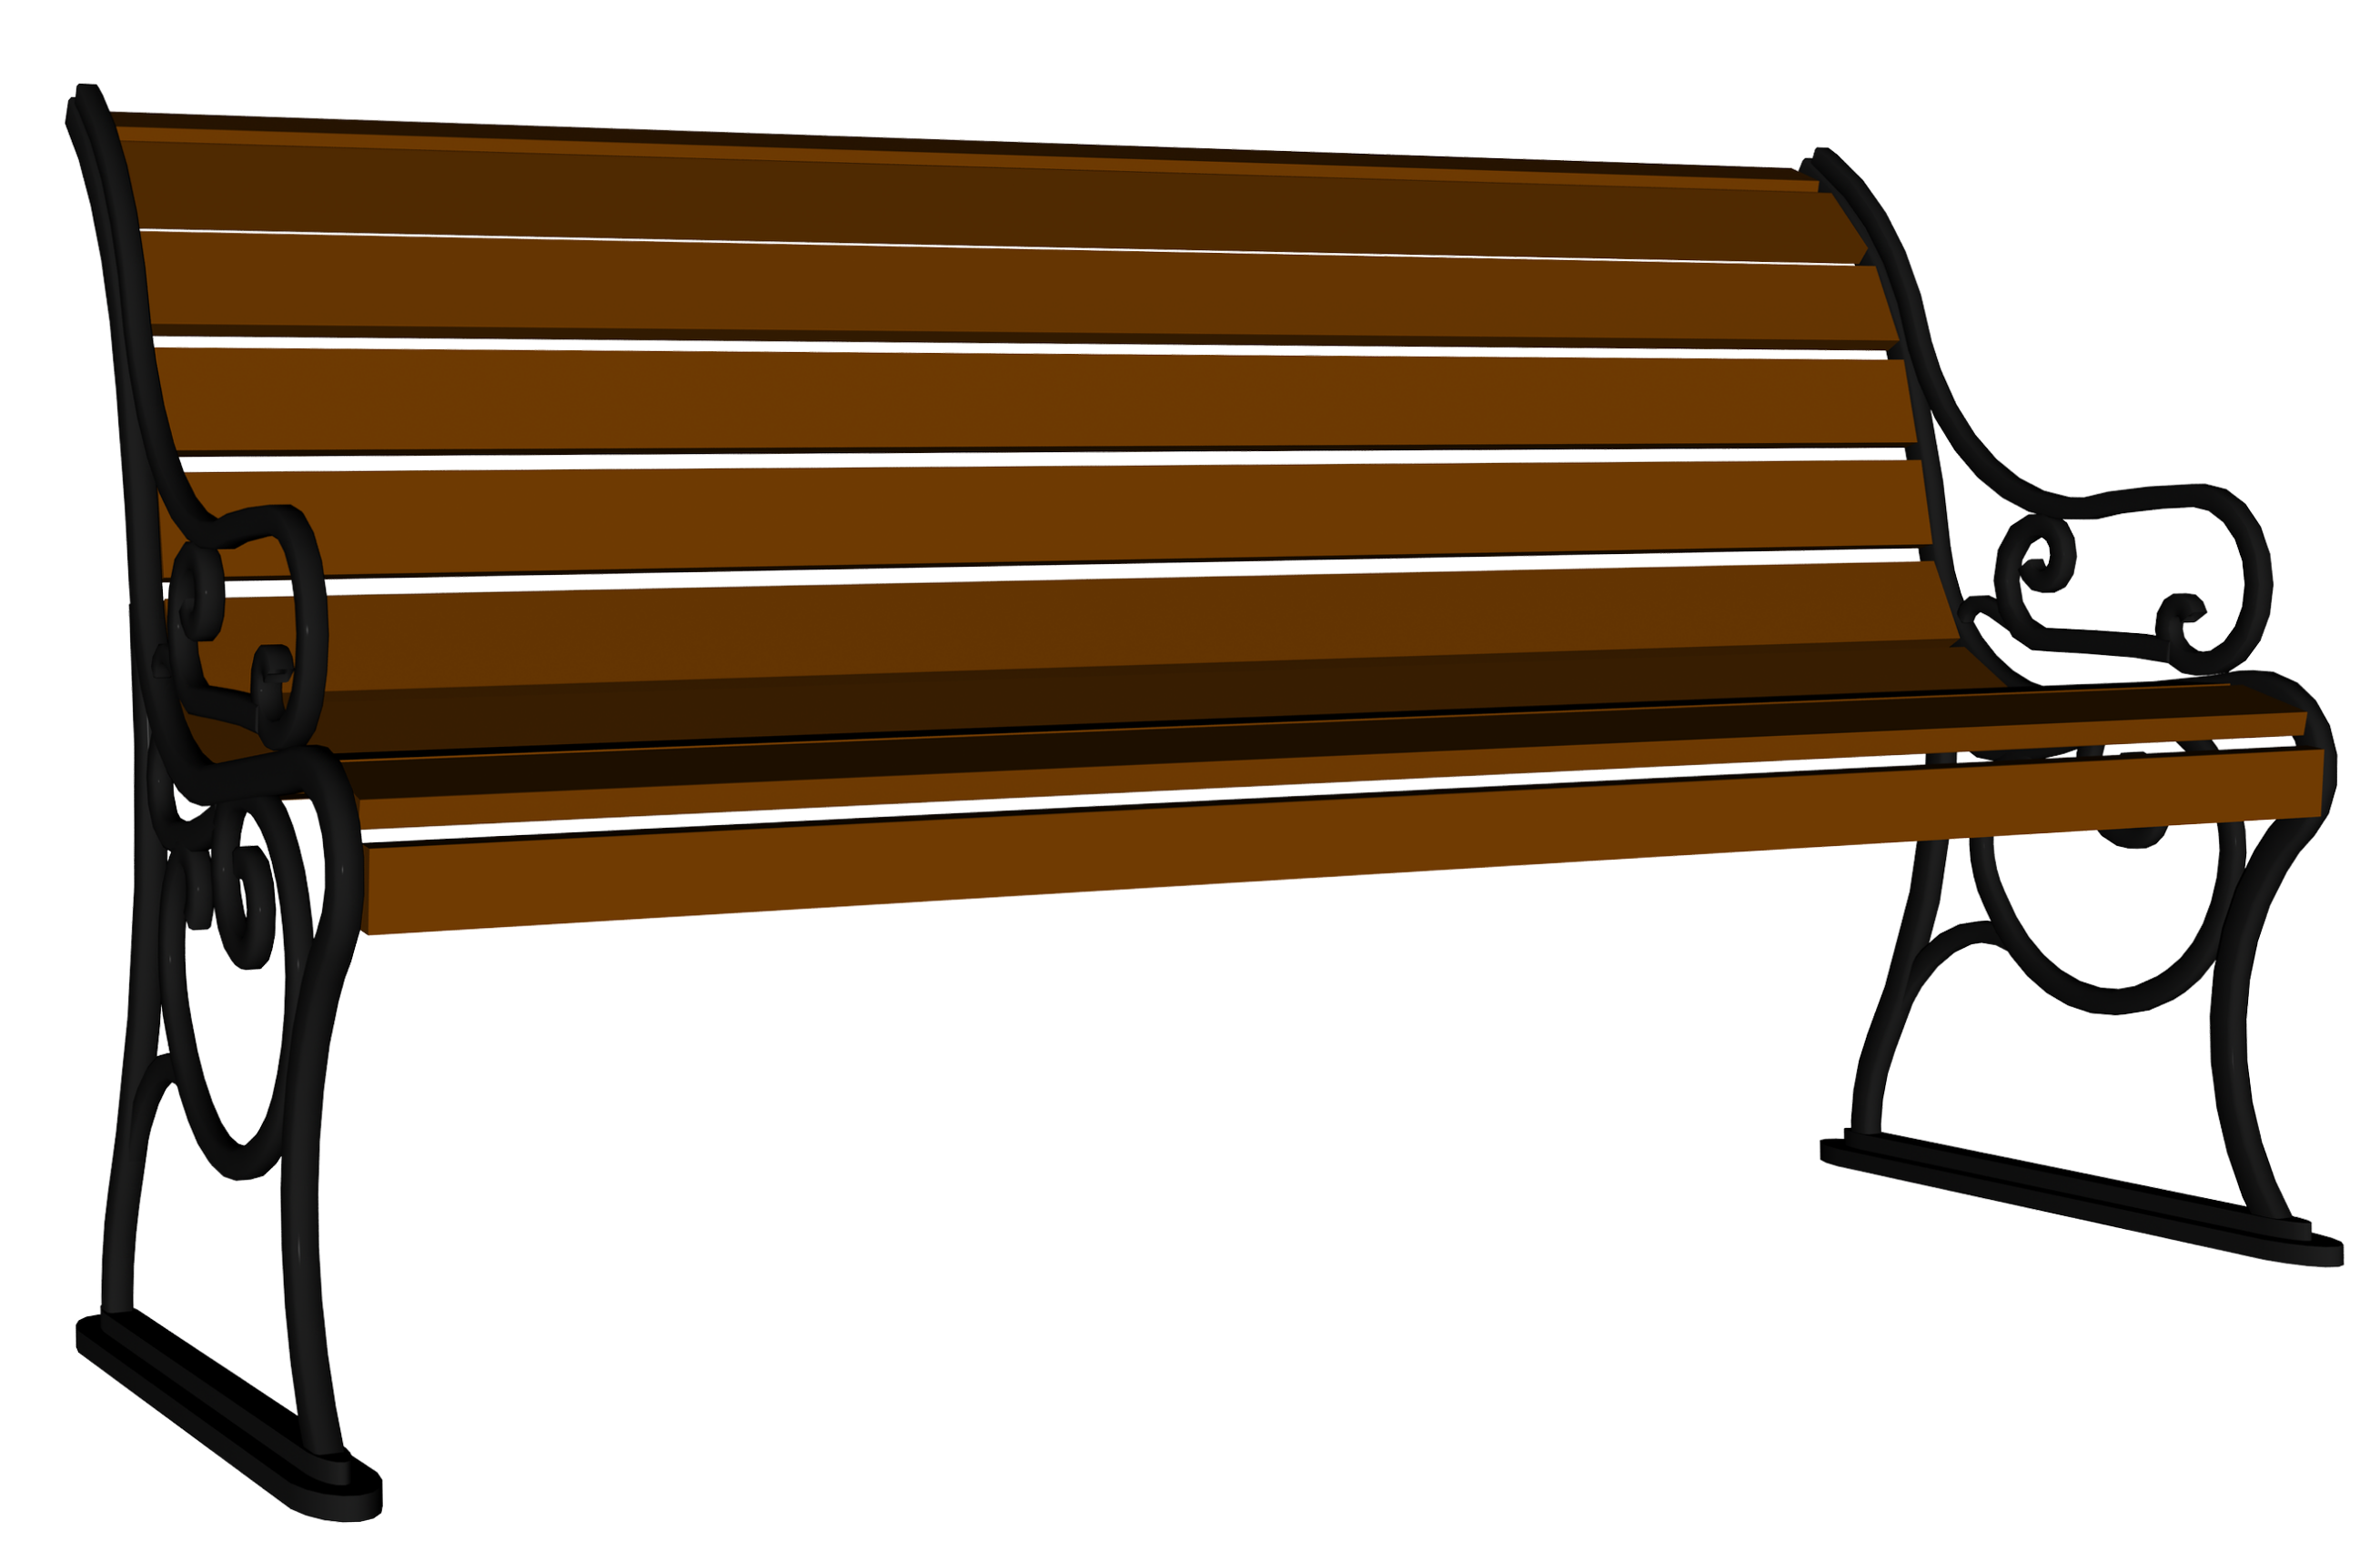 Bench clipart #15, Download drawings